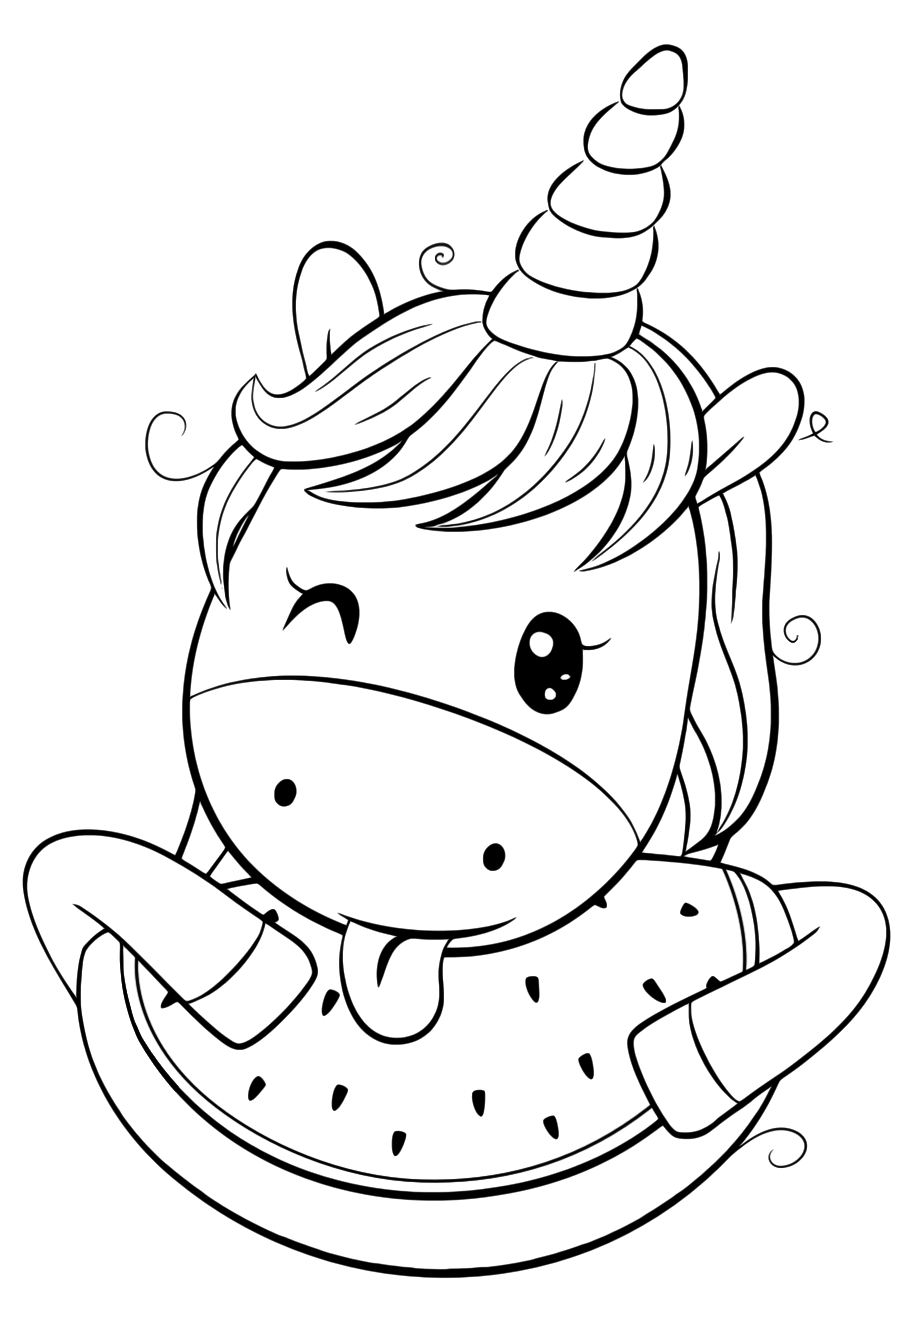 unicorn coloring worksheets coloring pages of cute unicorns at getcoloringscom free unicorn worksheets coloring